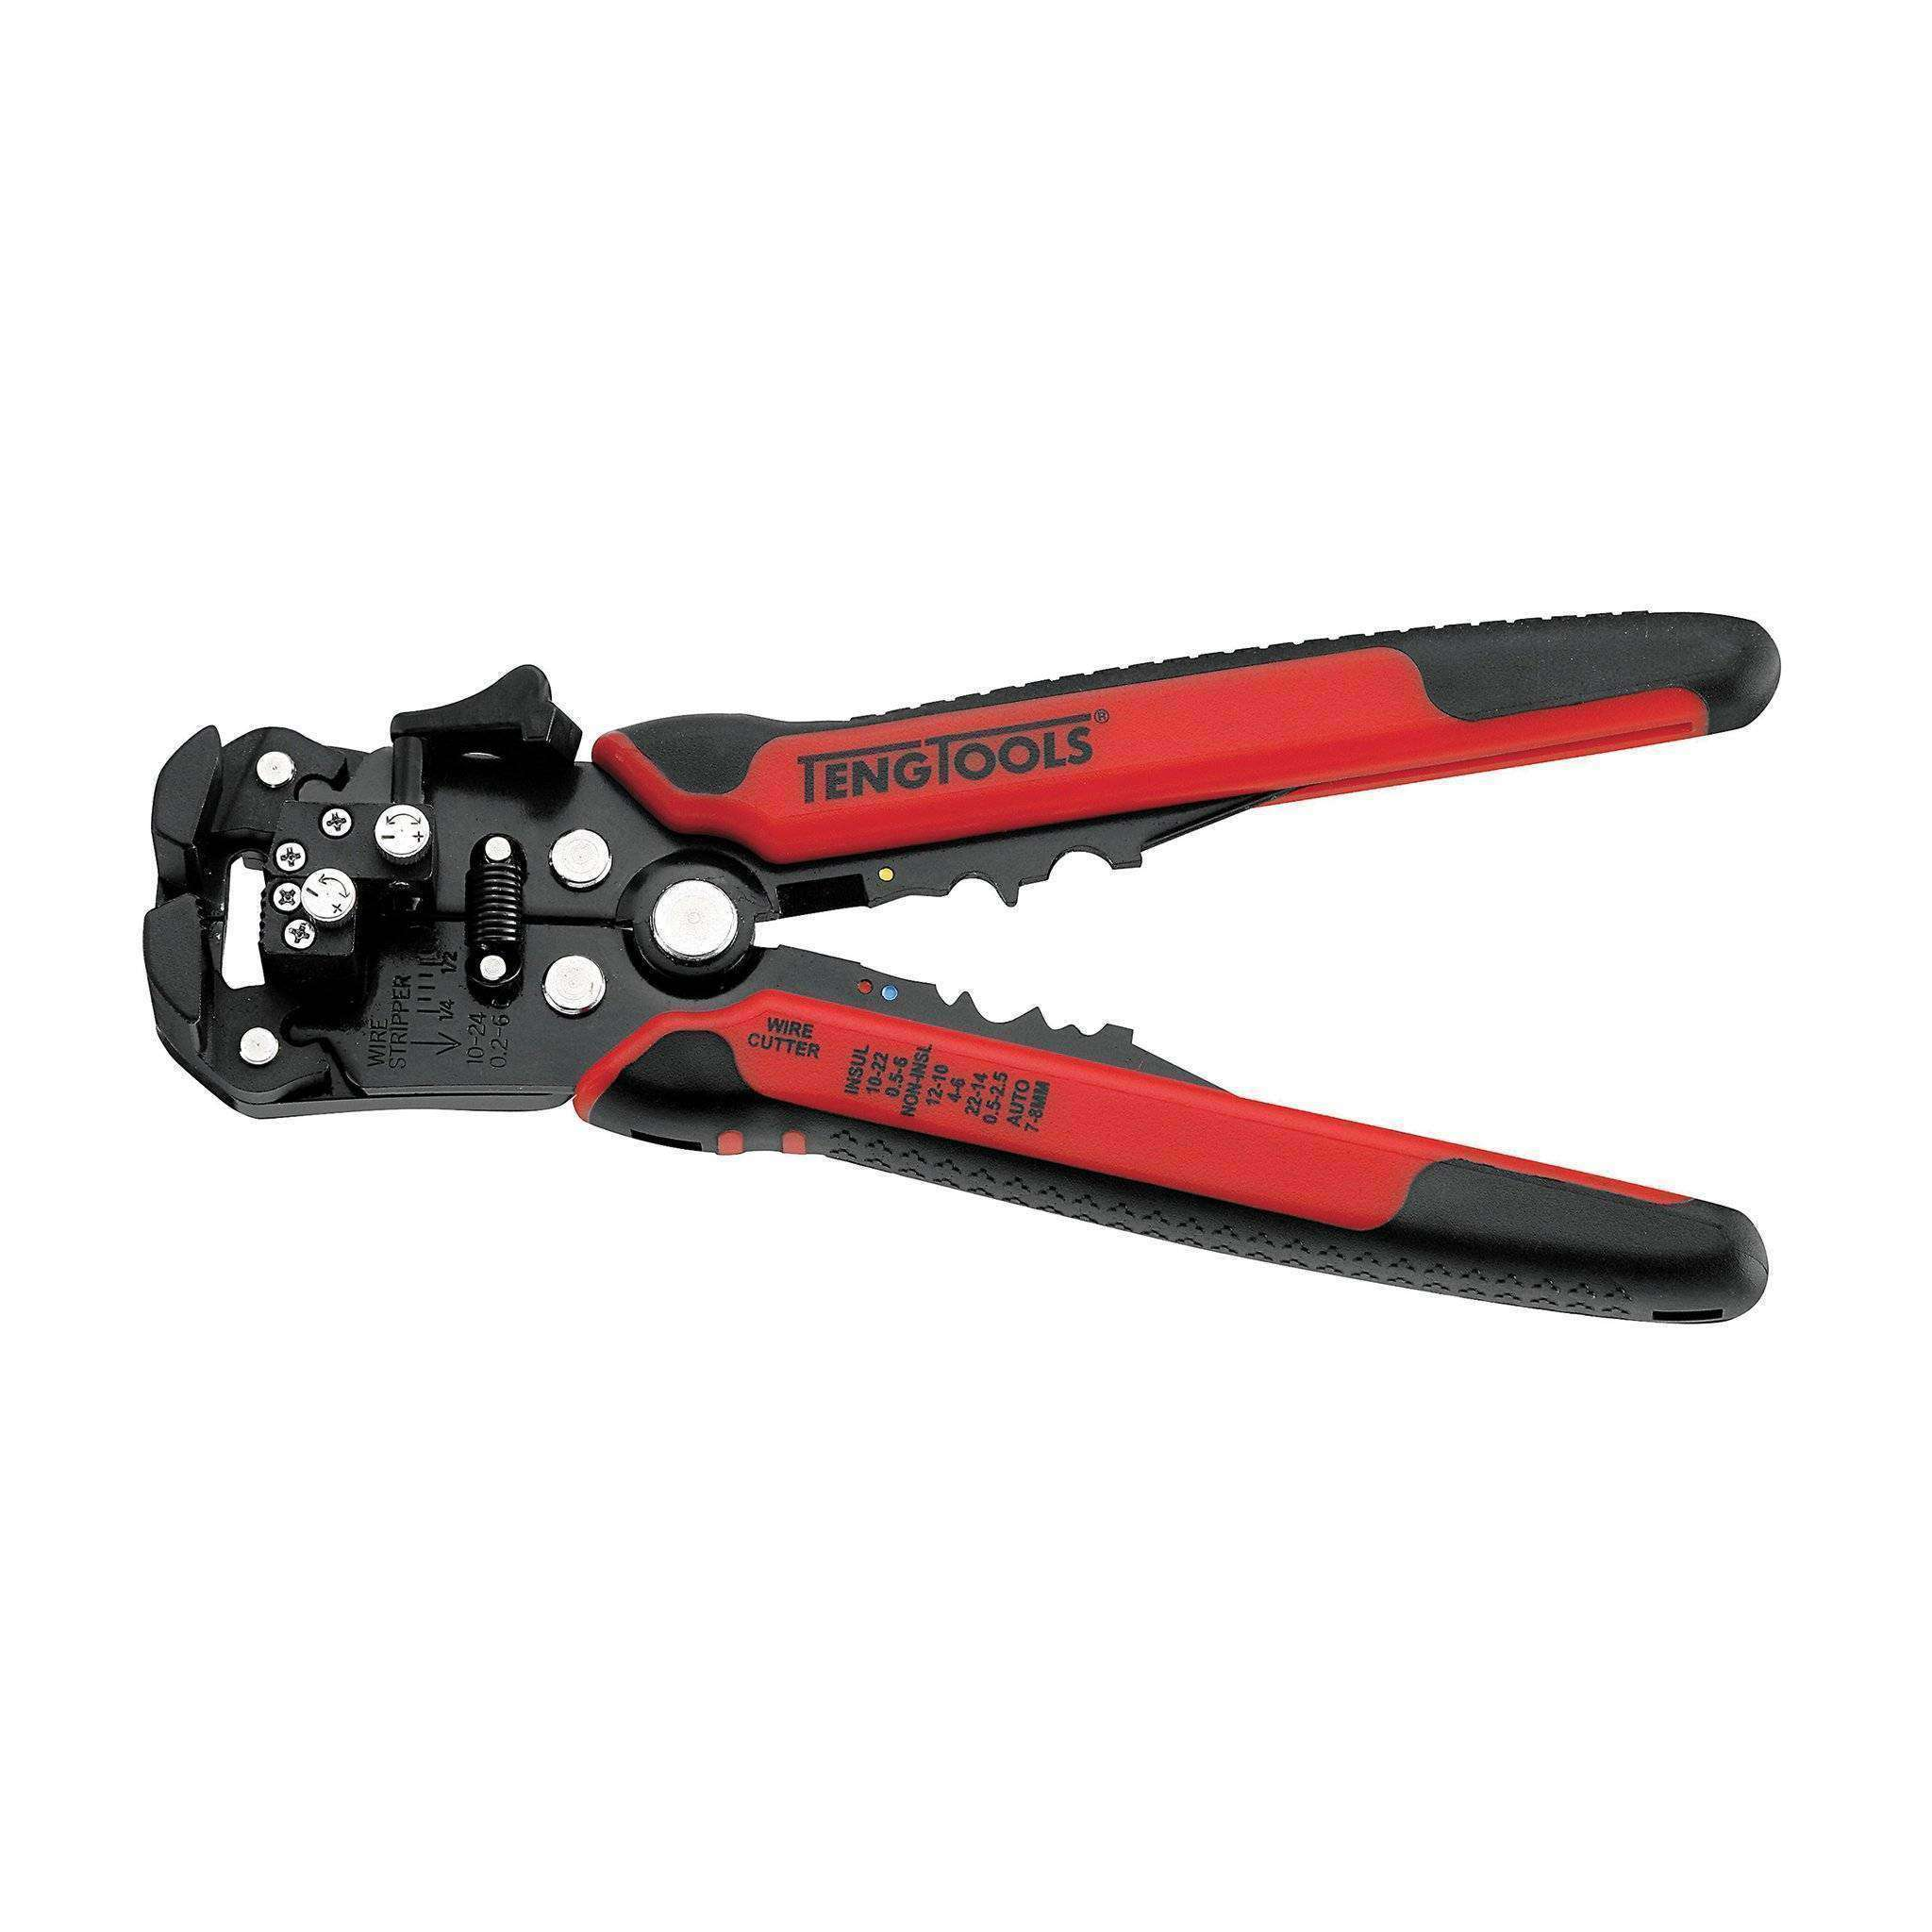 Automatic Cable Strippers, Wire Cutters & Crimping Pliers - Teng Tools CP60 - Teng Tools USA